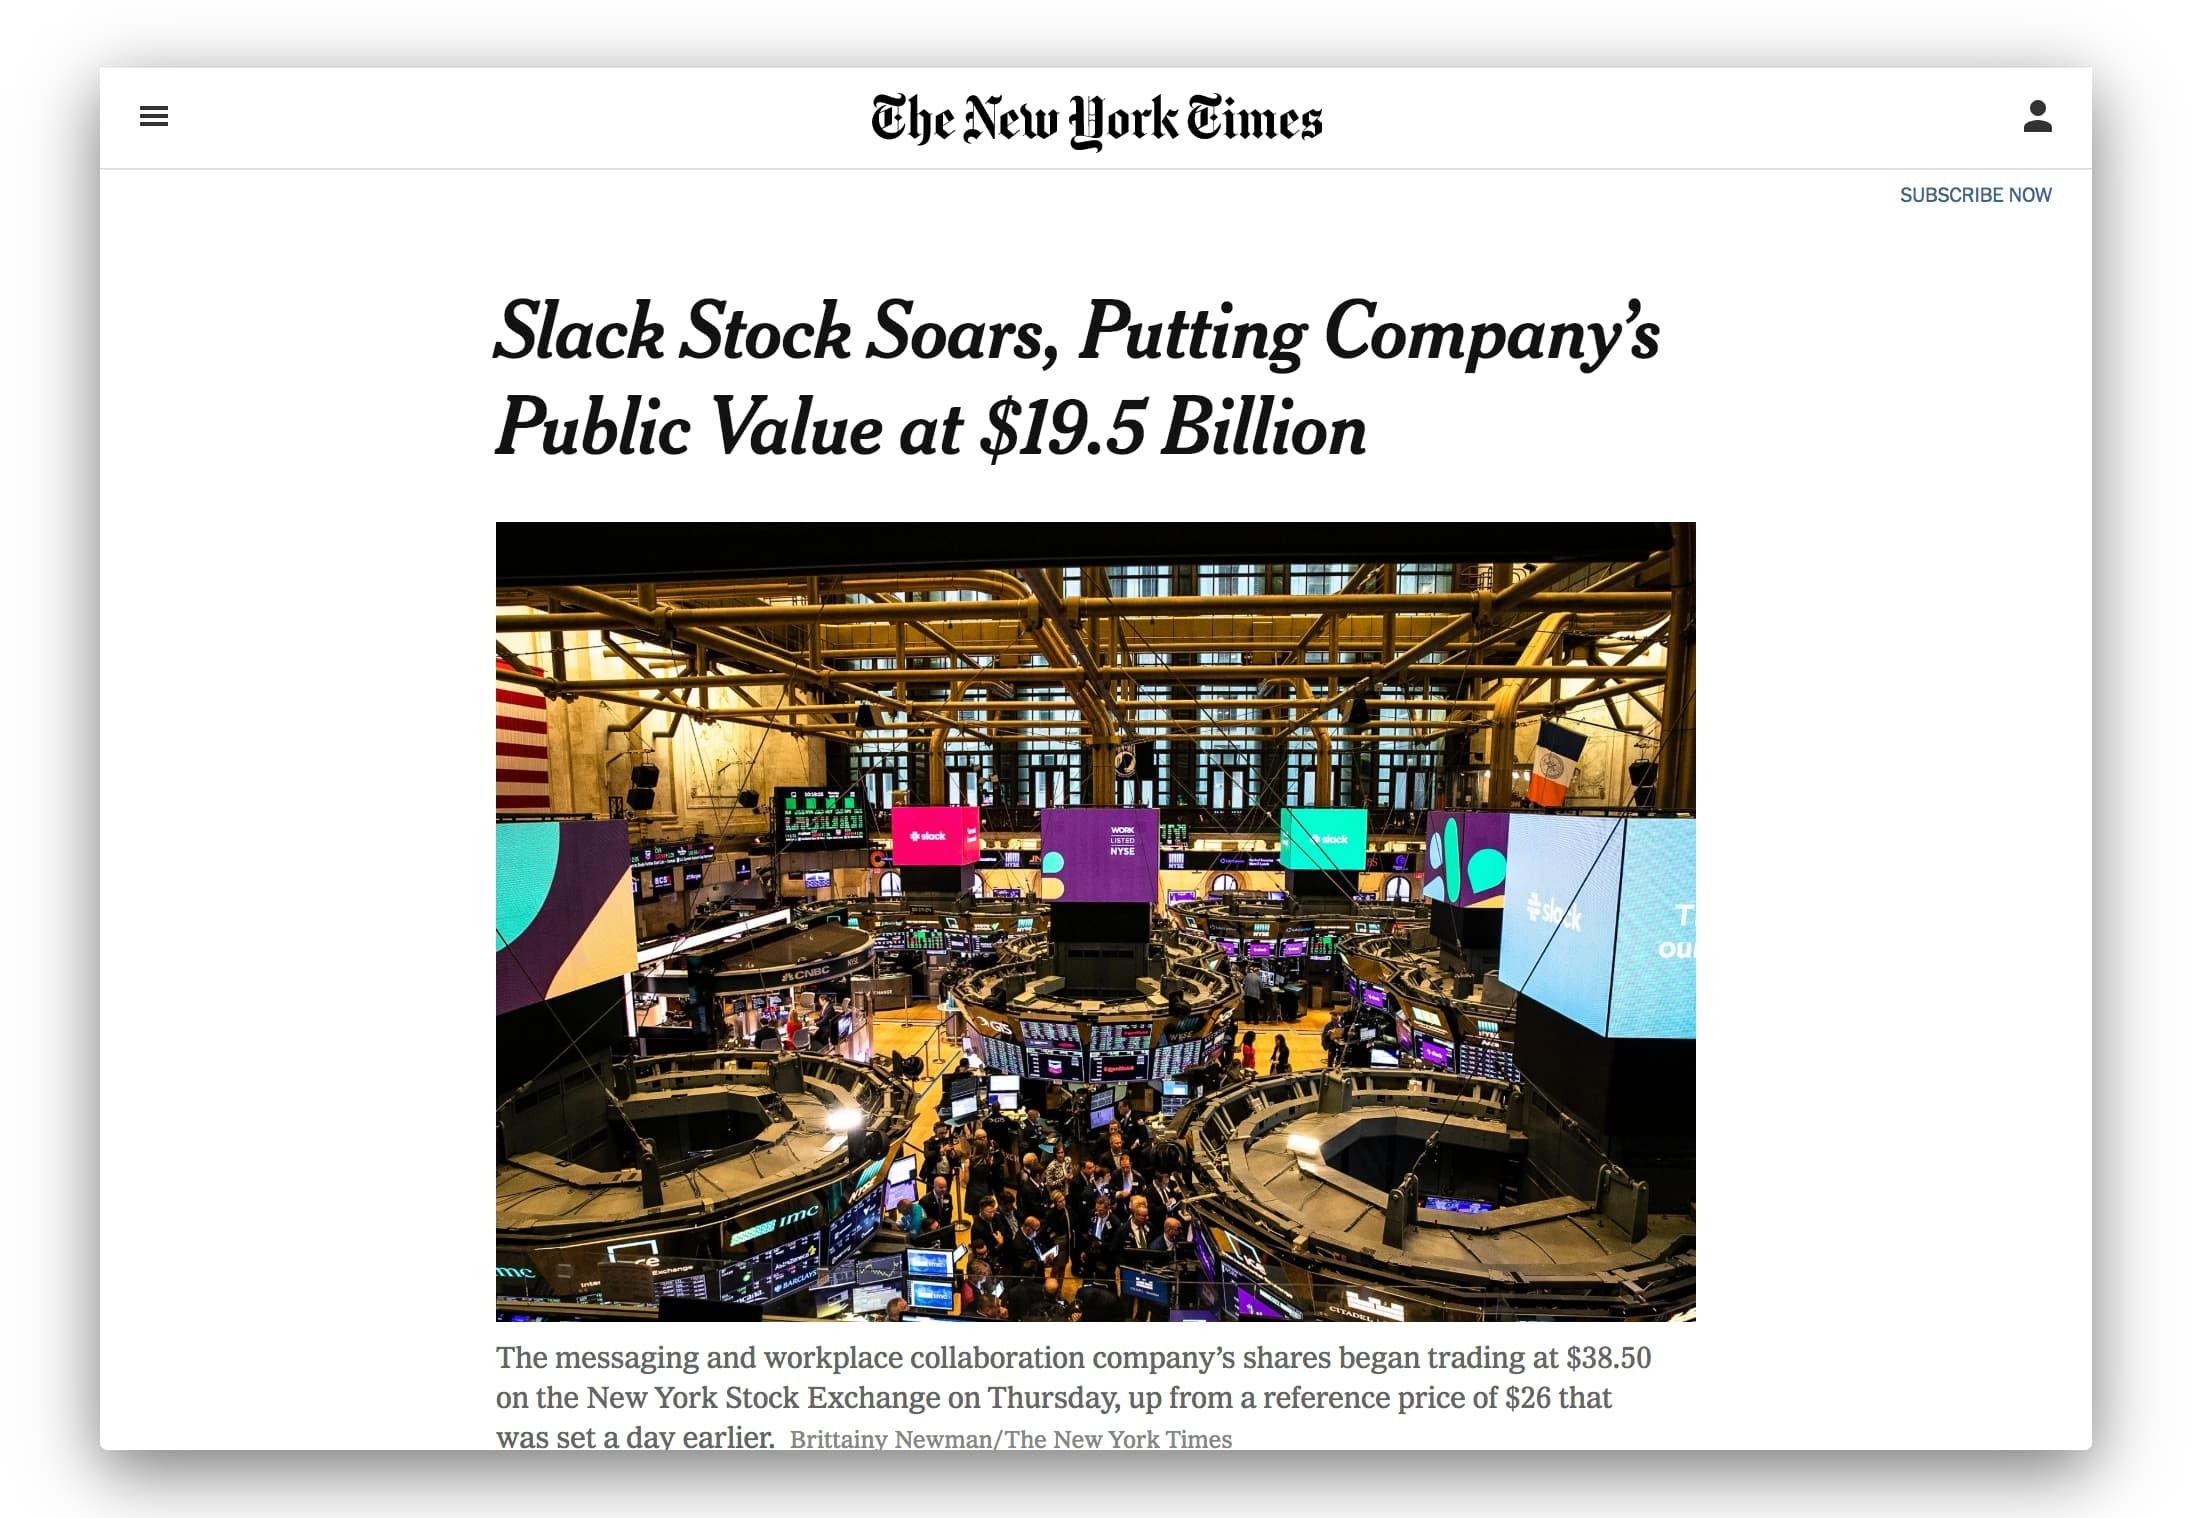 NYTimes article about Slack's increasing stock